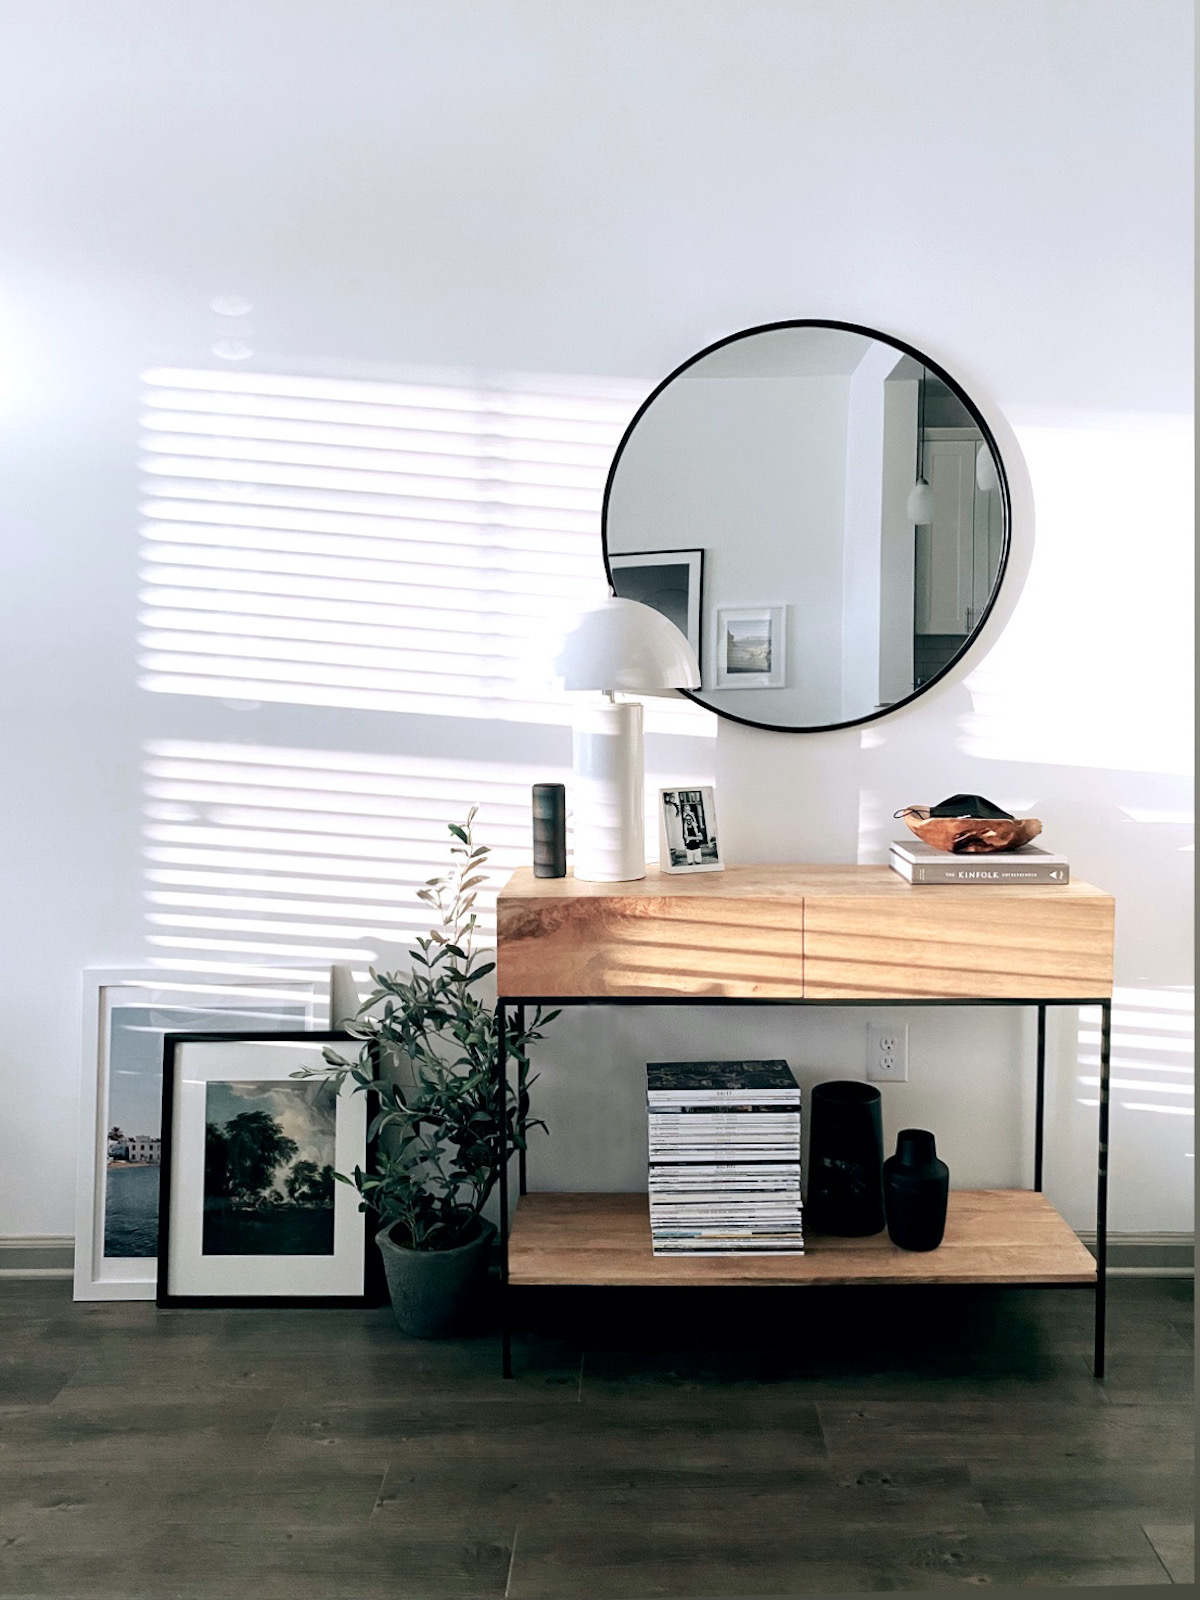 Two large Artifact Uprising Gallery Frames on the ground layered one in front of the other against the wall next to a credenza, house plant, and mirror